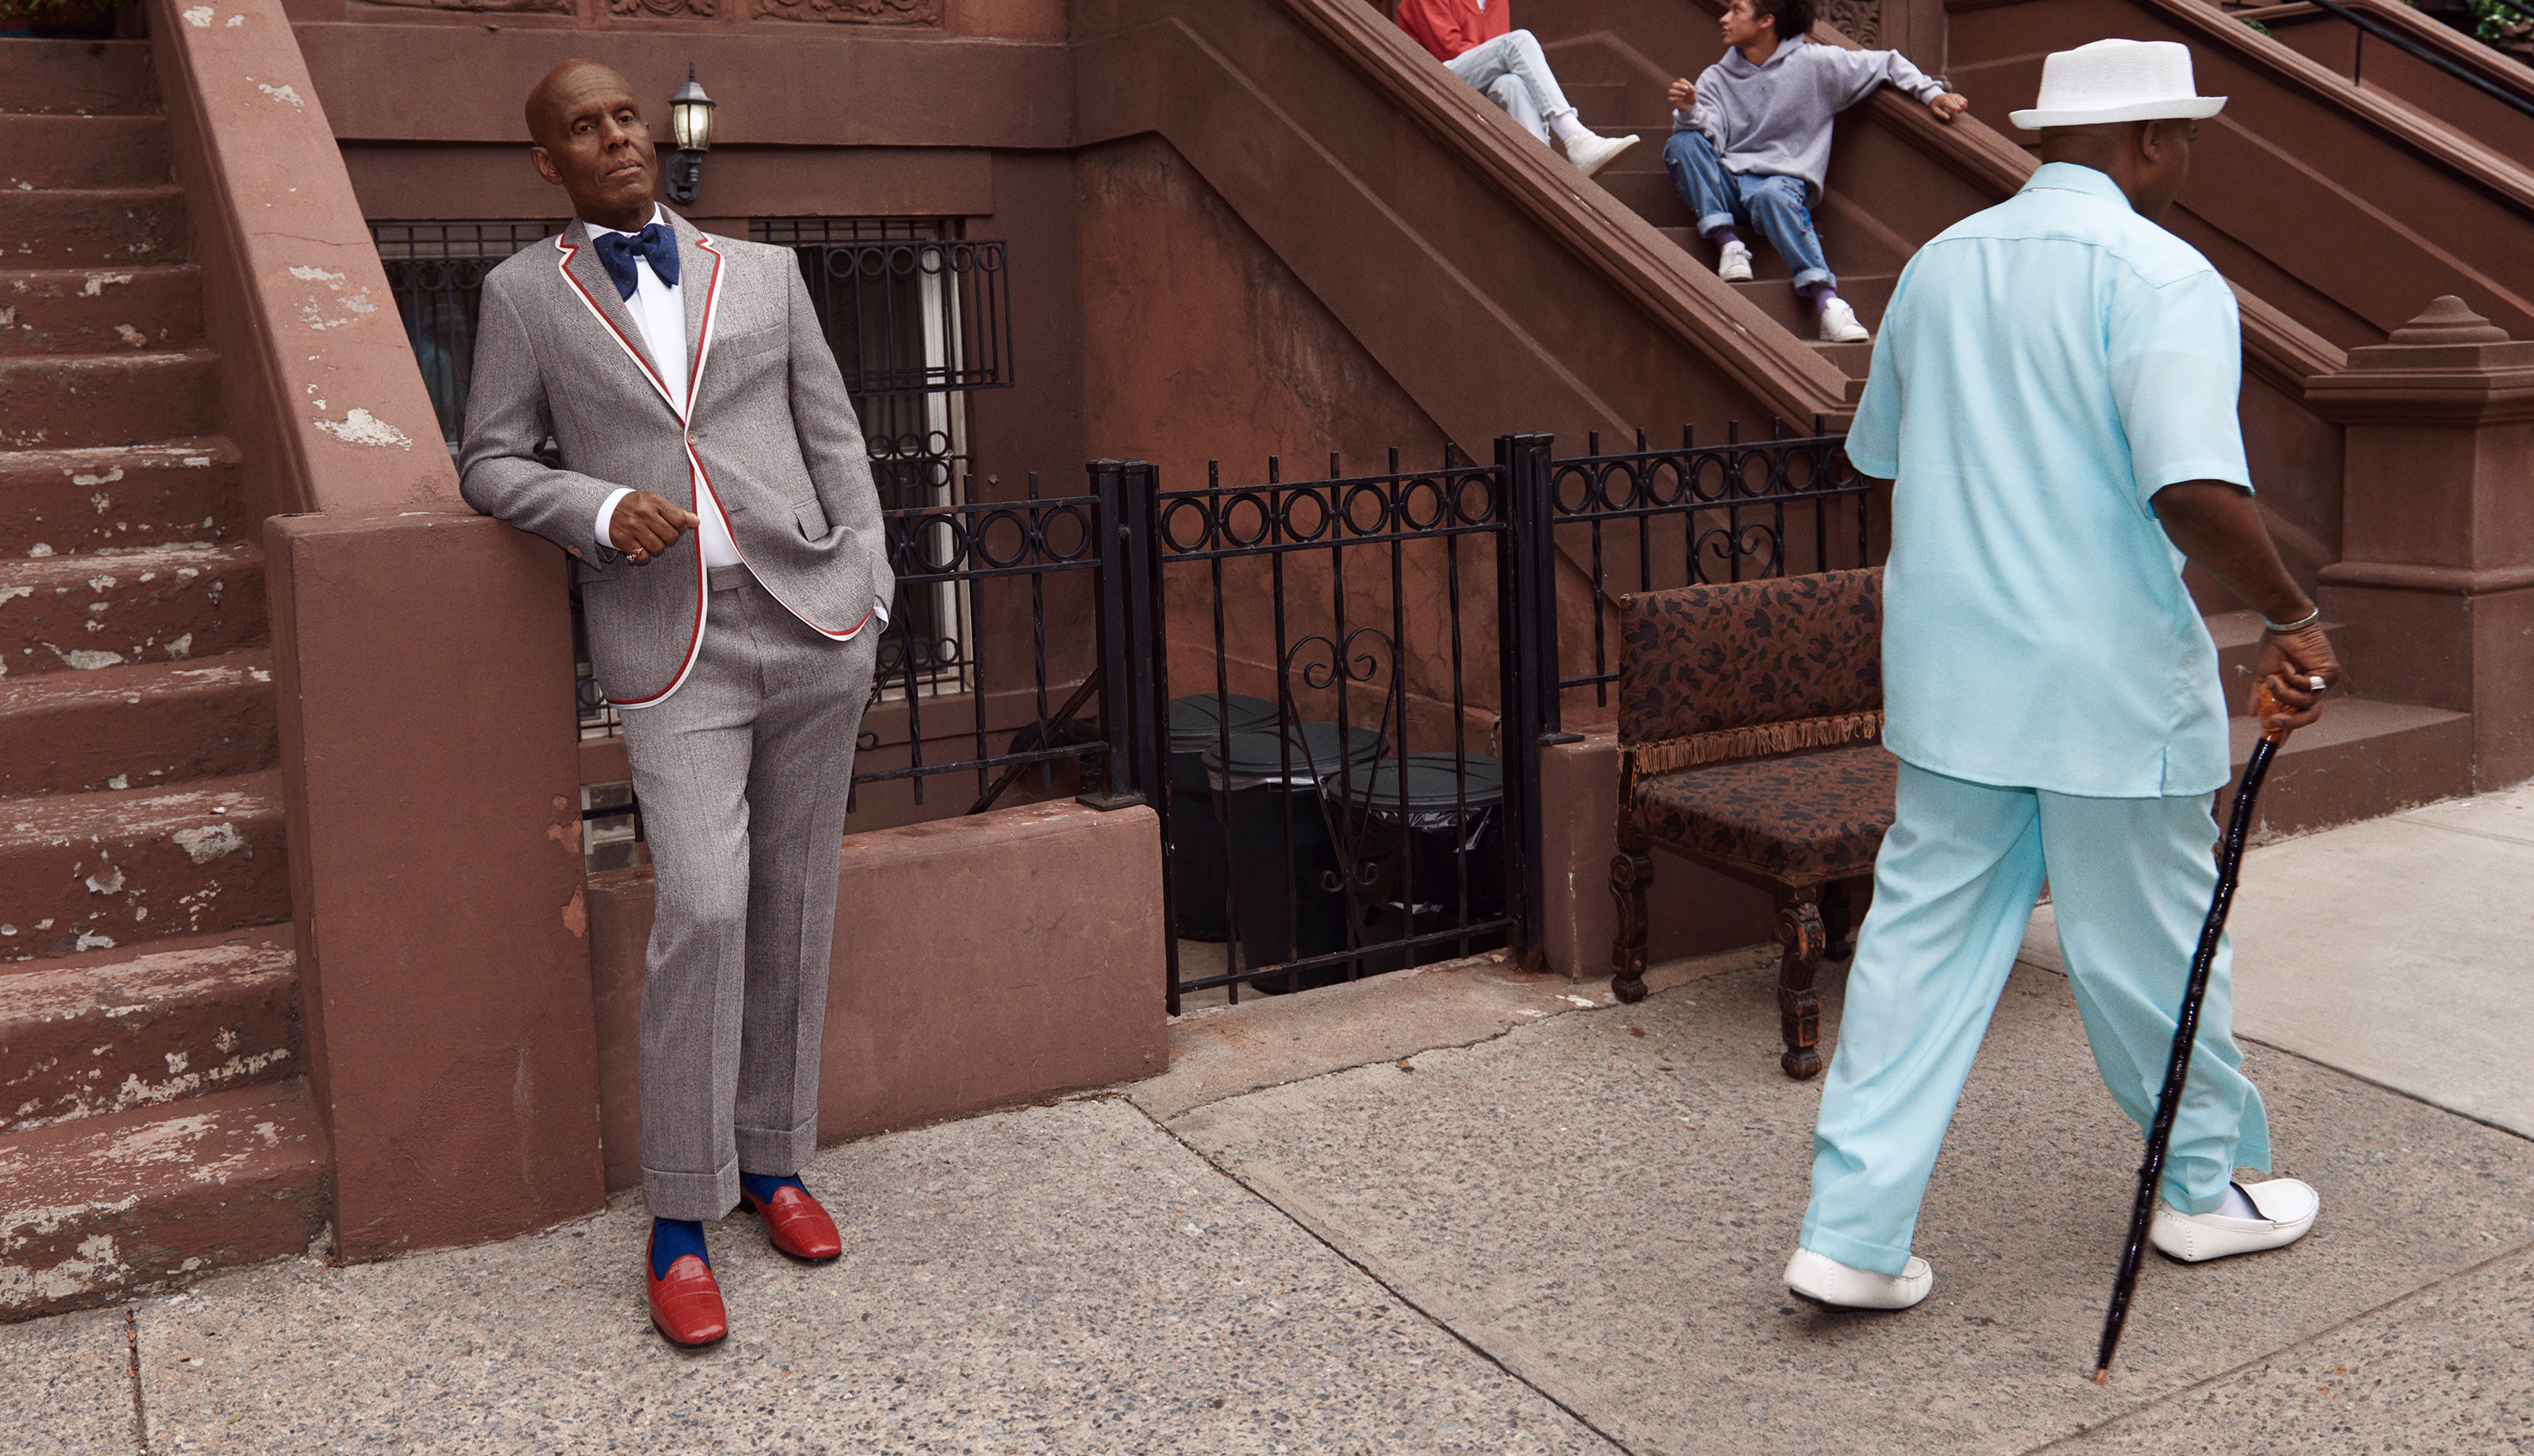 a6f9ff9e Gucci got called out for copying Dapper Dan. Now it's backing his ...